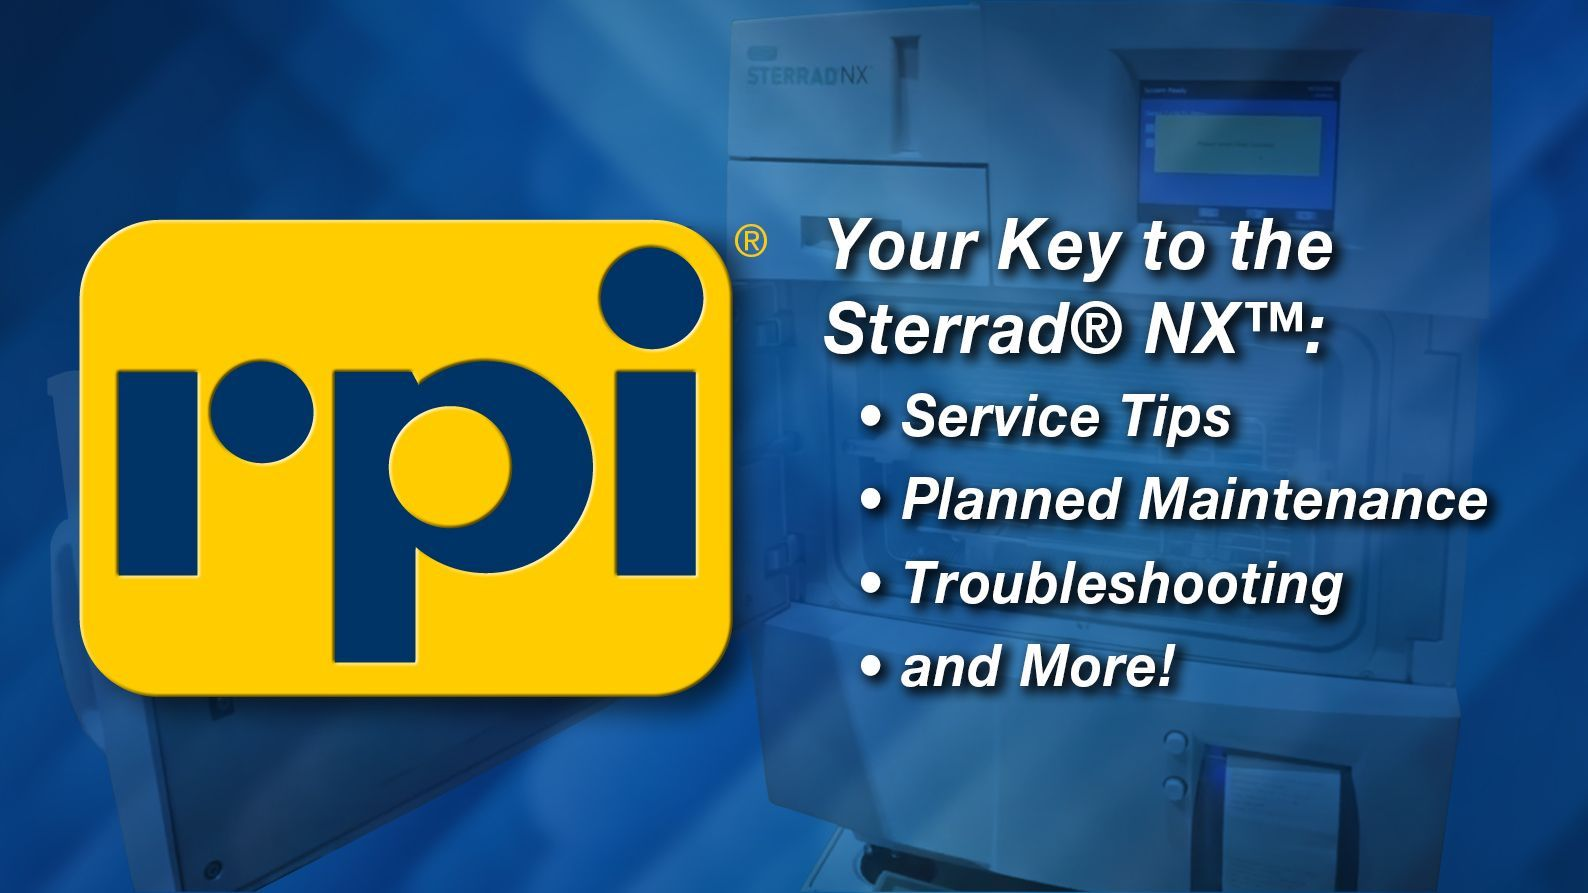 Your Key to the  Sterrad NX